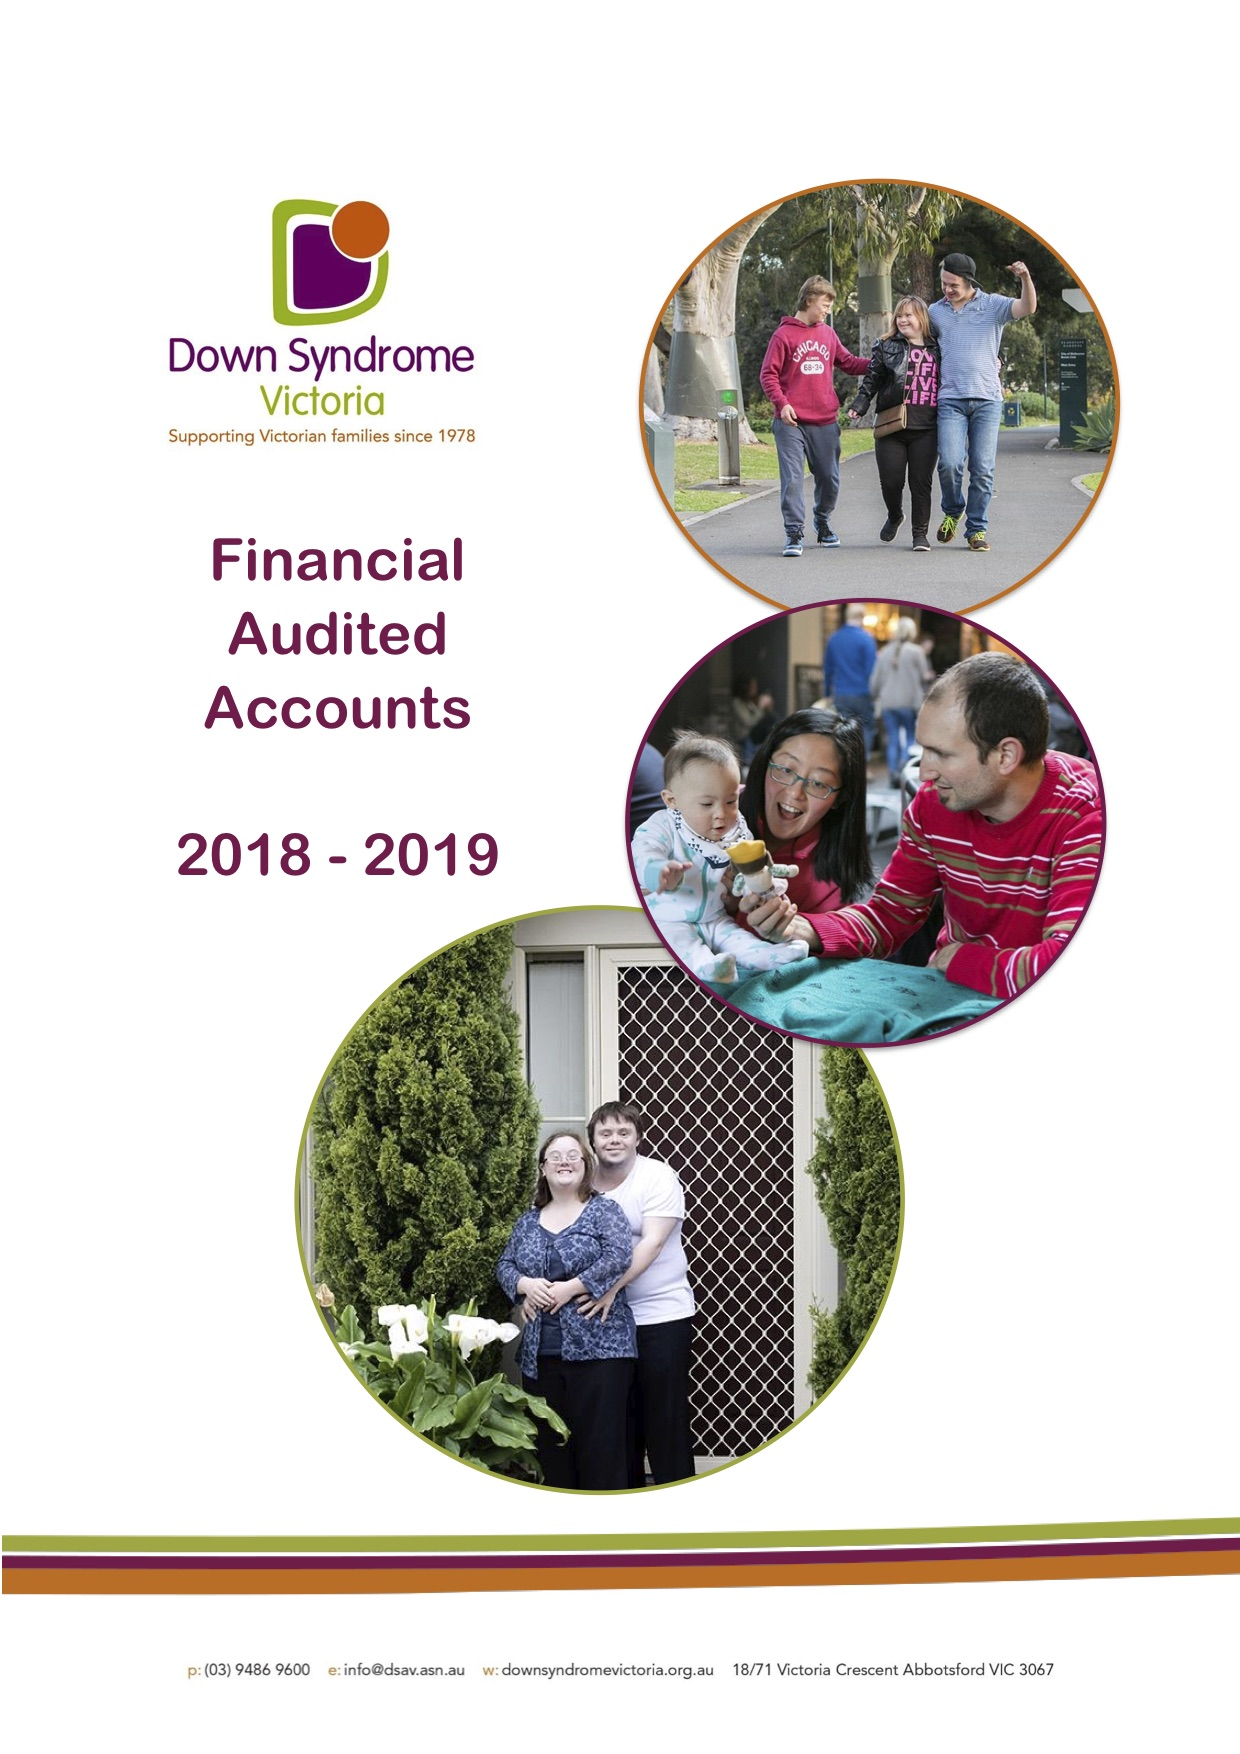 Down Syndrome Victoria Financial Report 2018 to 2019